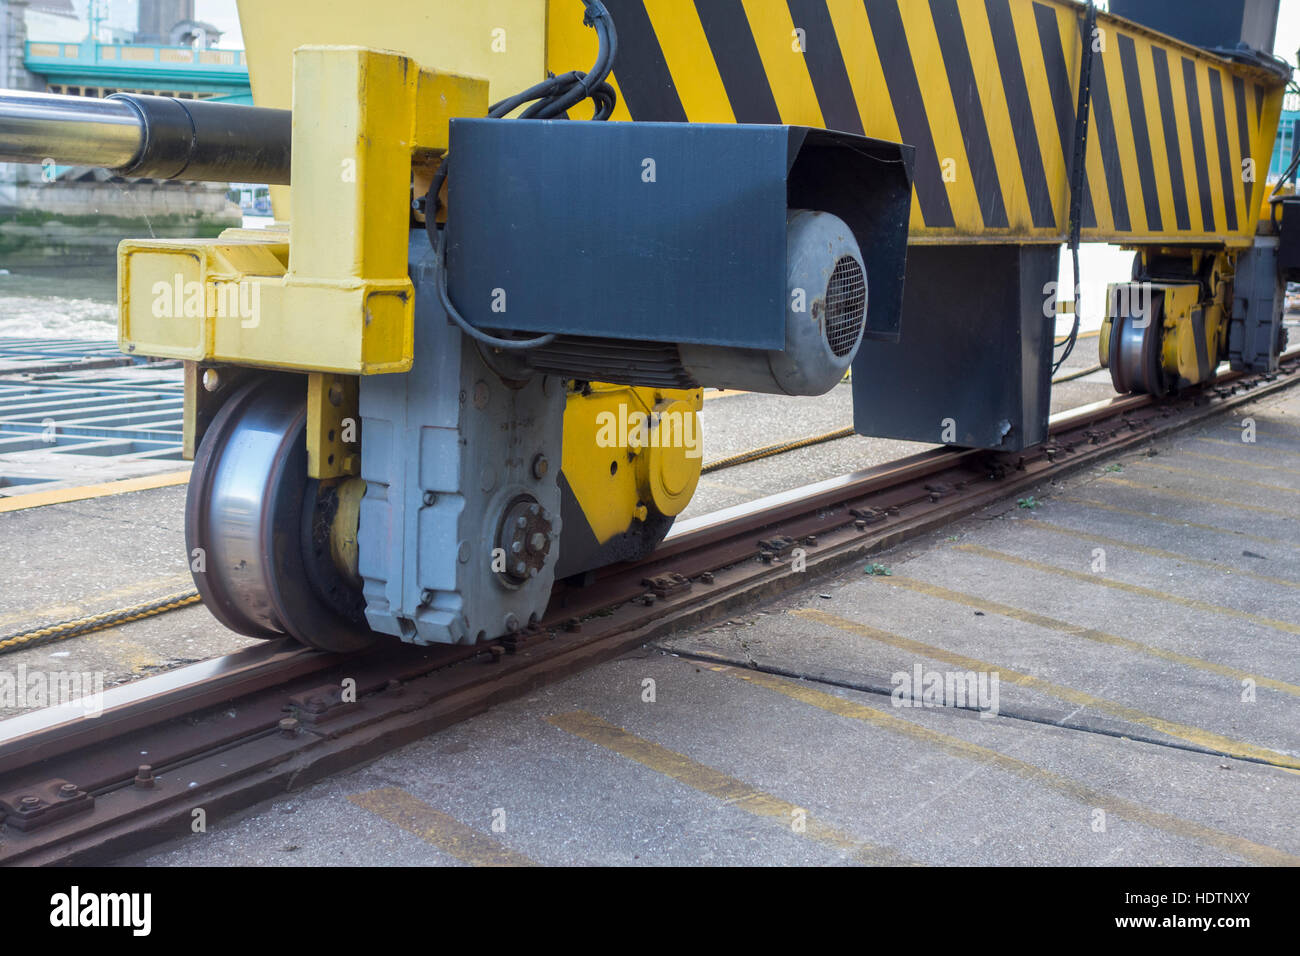 Close up of track and wheels on a large lifting crane at Walbrook Wharf. London, UK - Stock Image